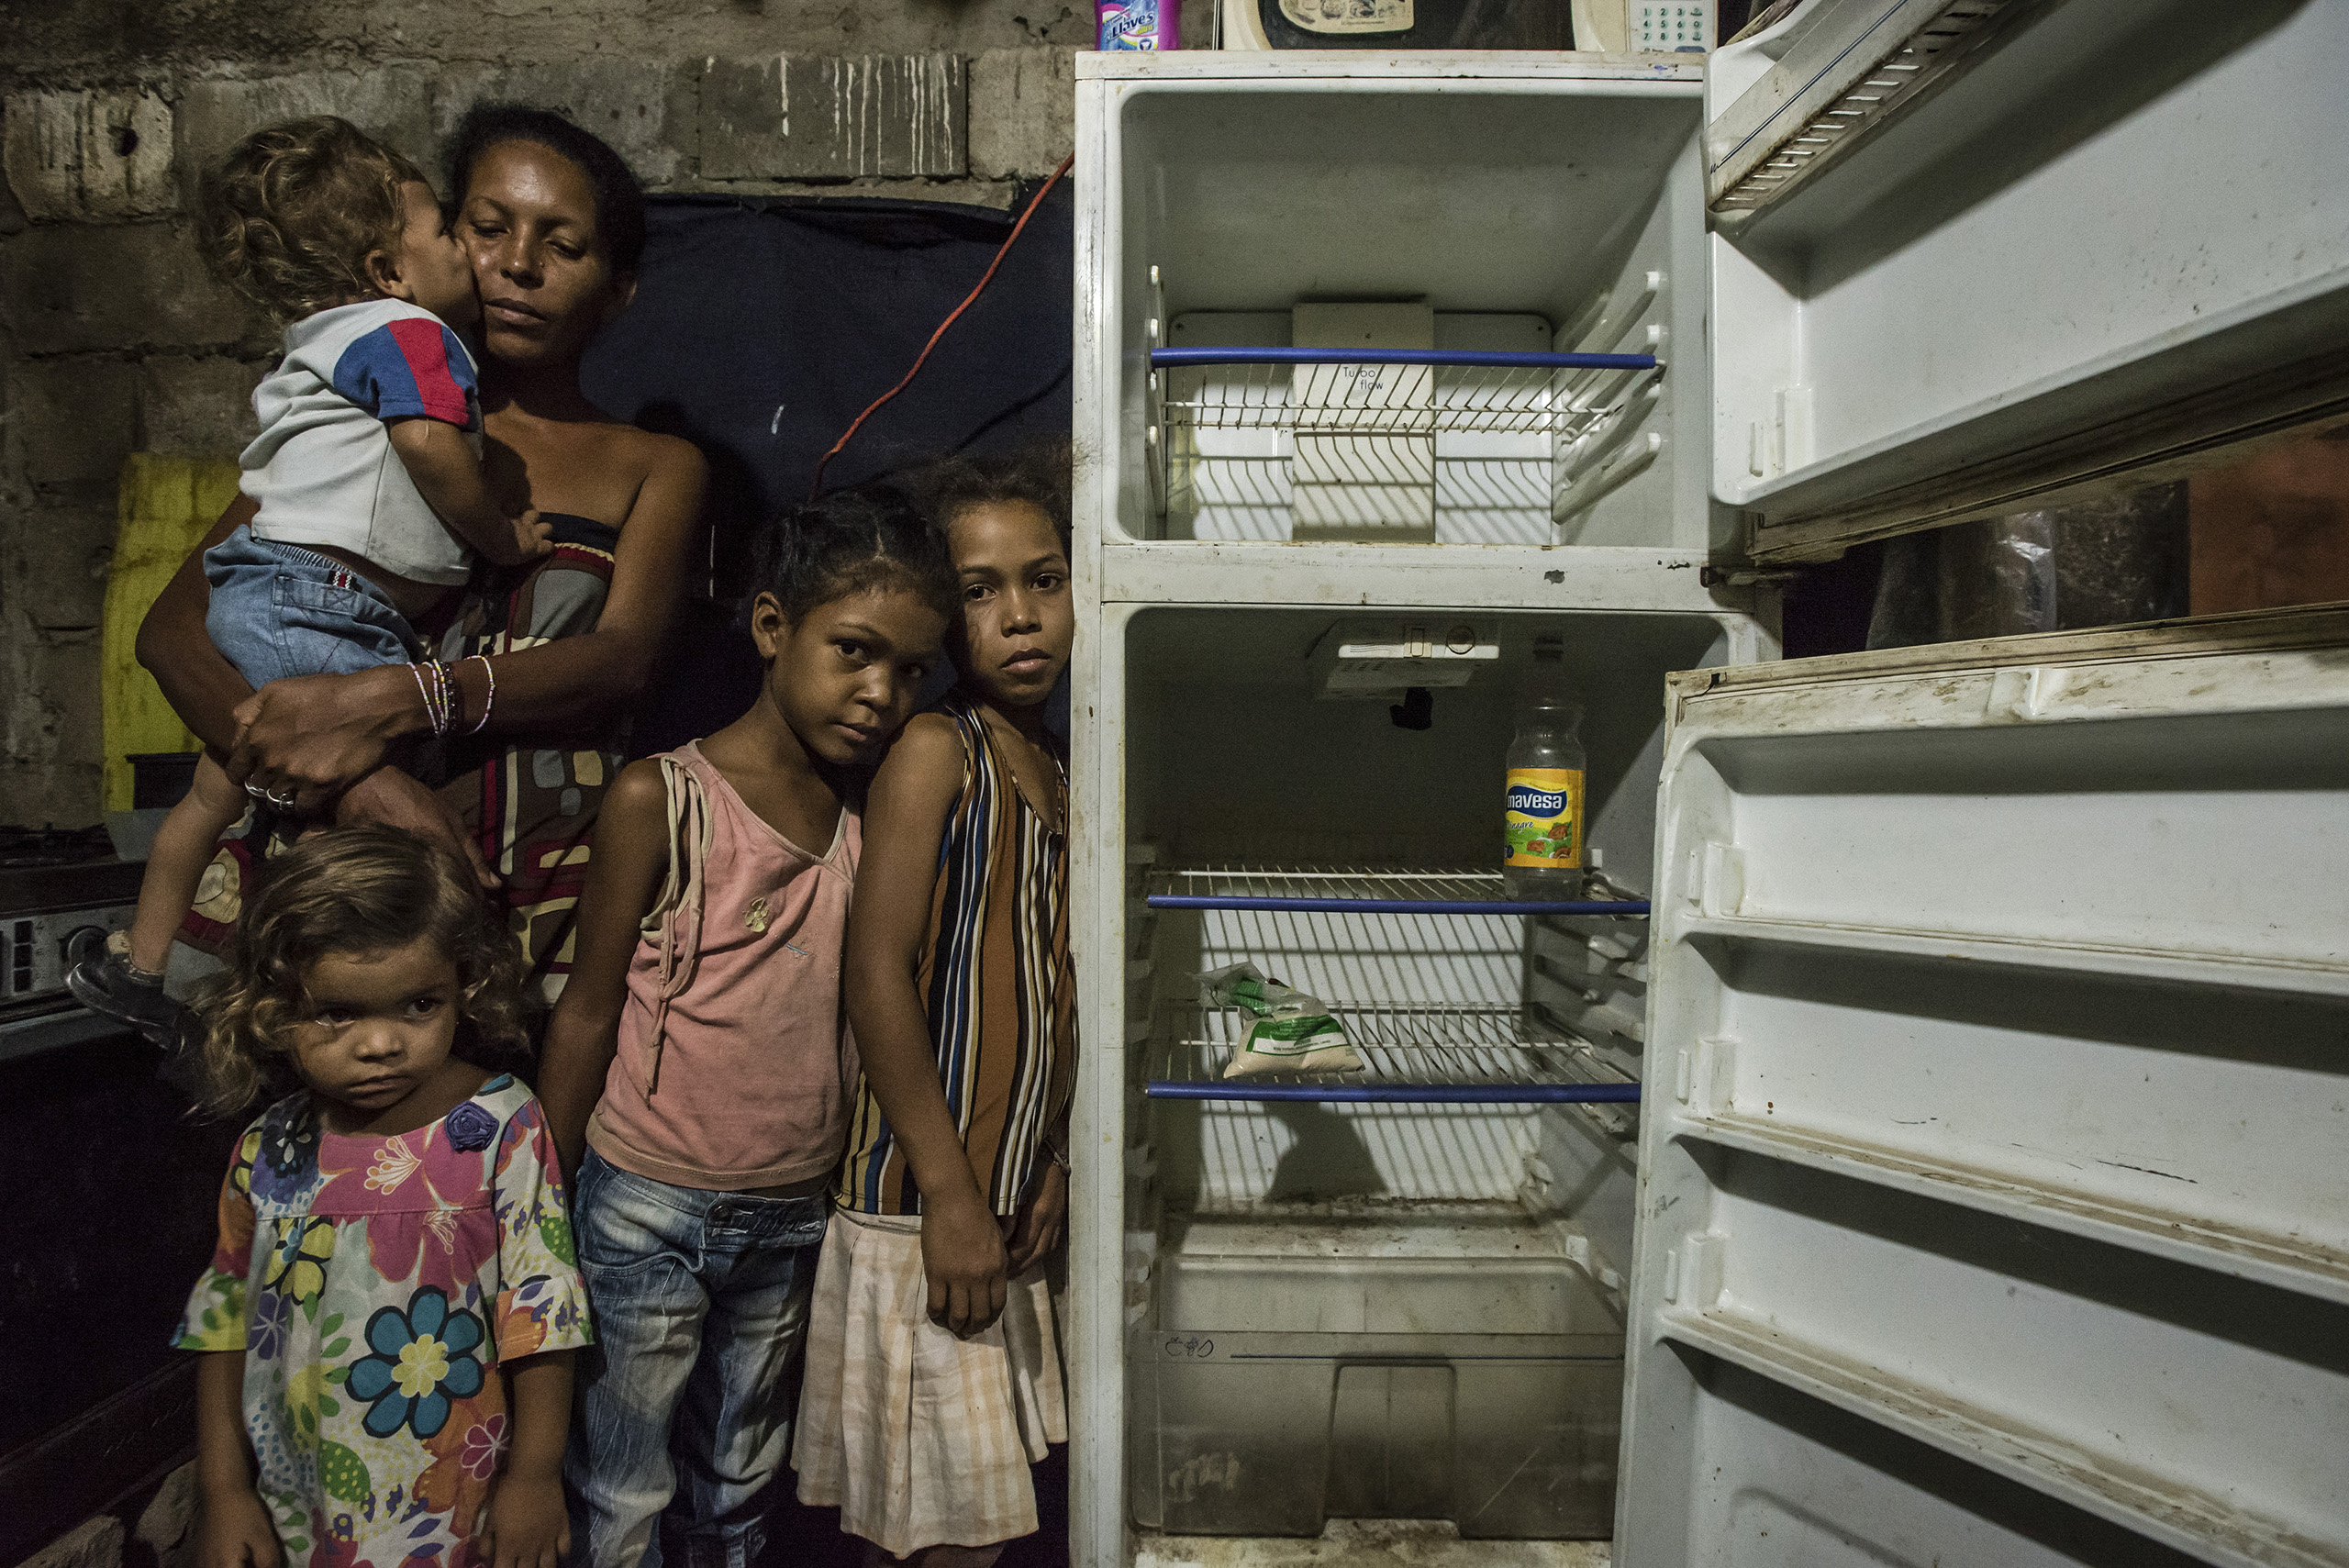 Leidy Cordova, 37, with four of her five children at their home in Cumana, Venezuela, on June 16, 2016. Their broken refrigerator held the only food in the house: a bag of corn flour and a bottle of vinegar.